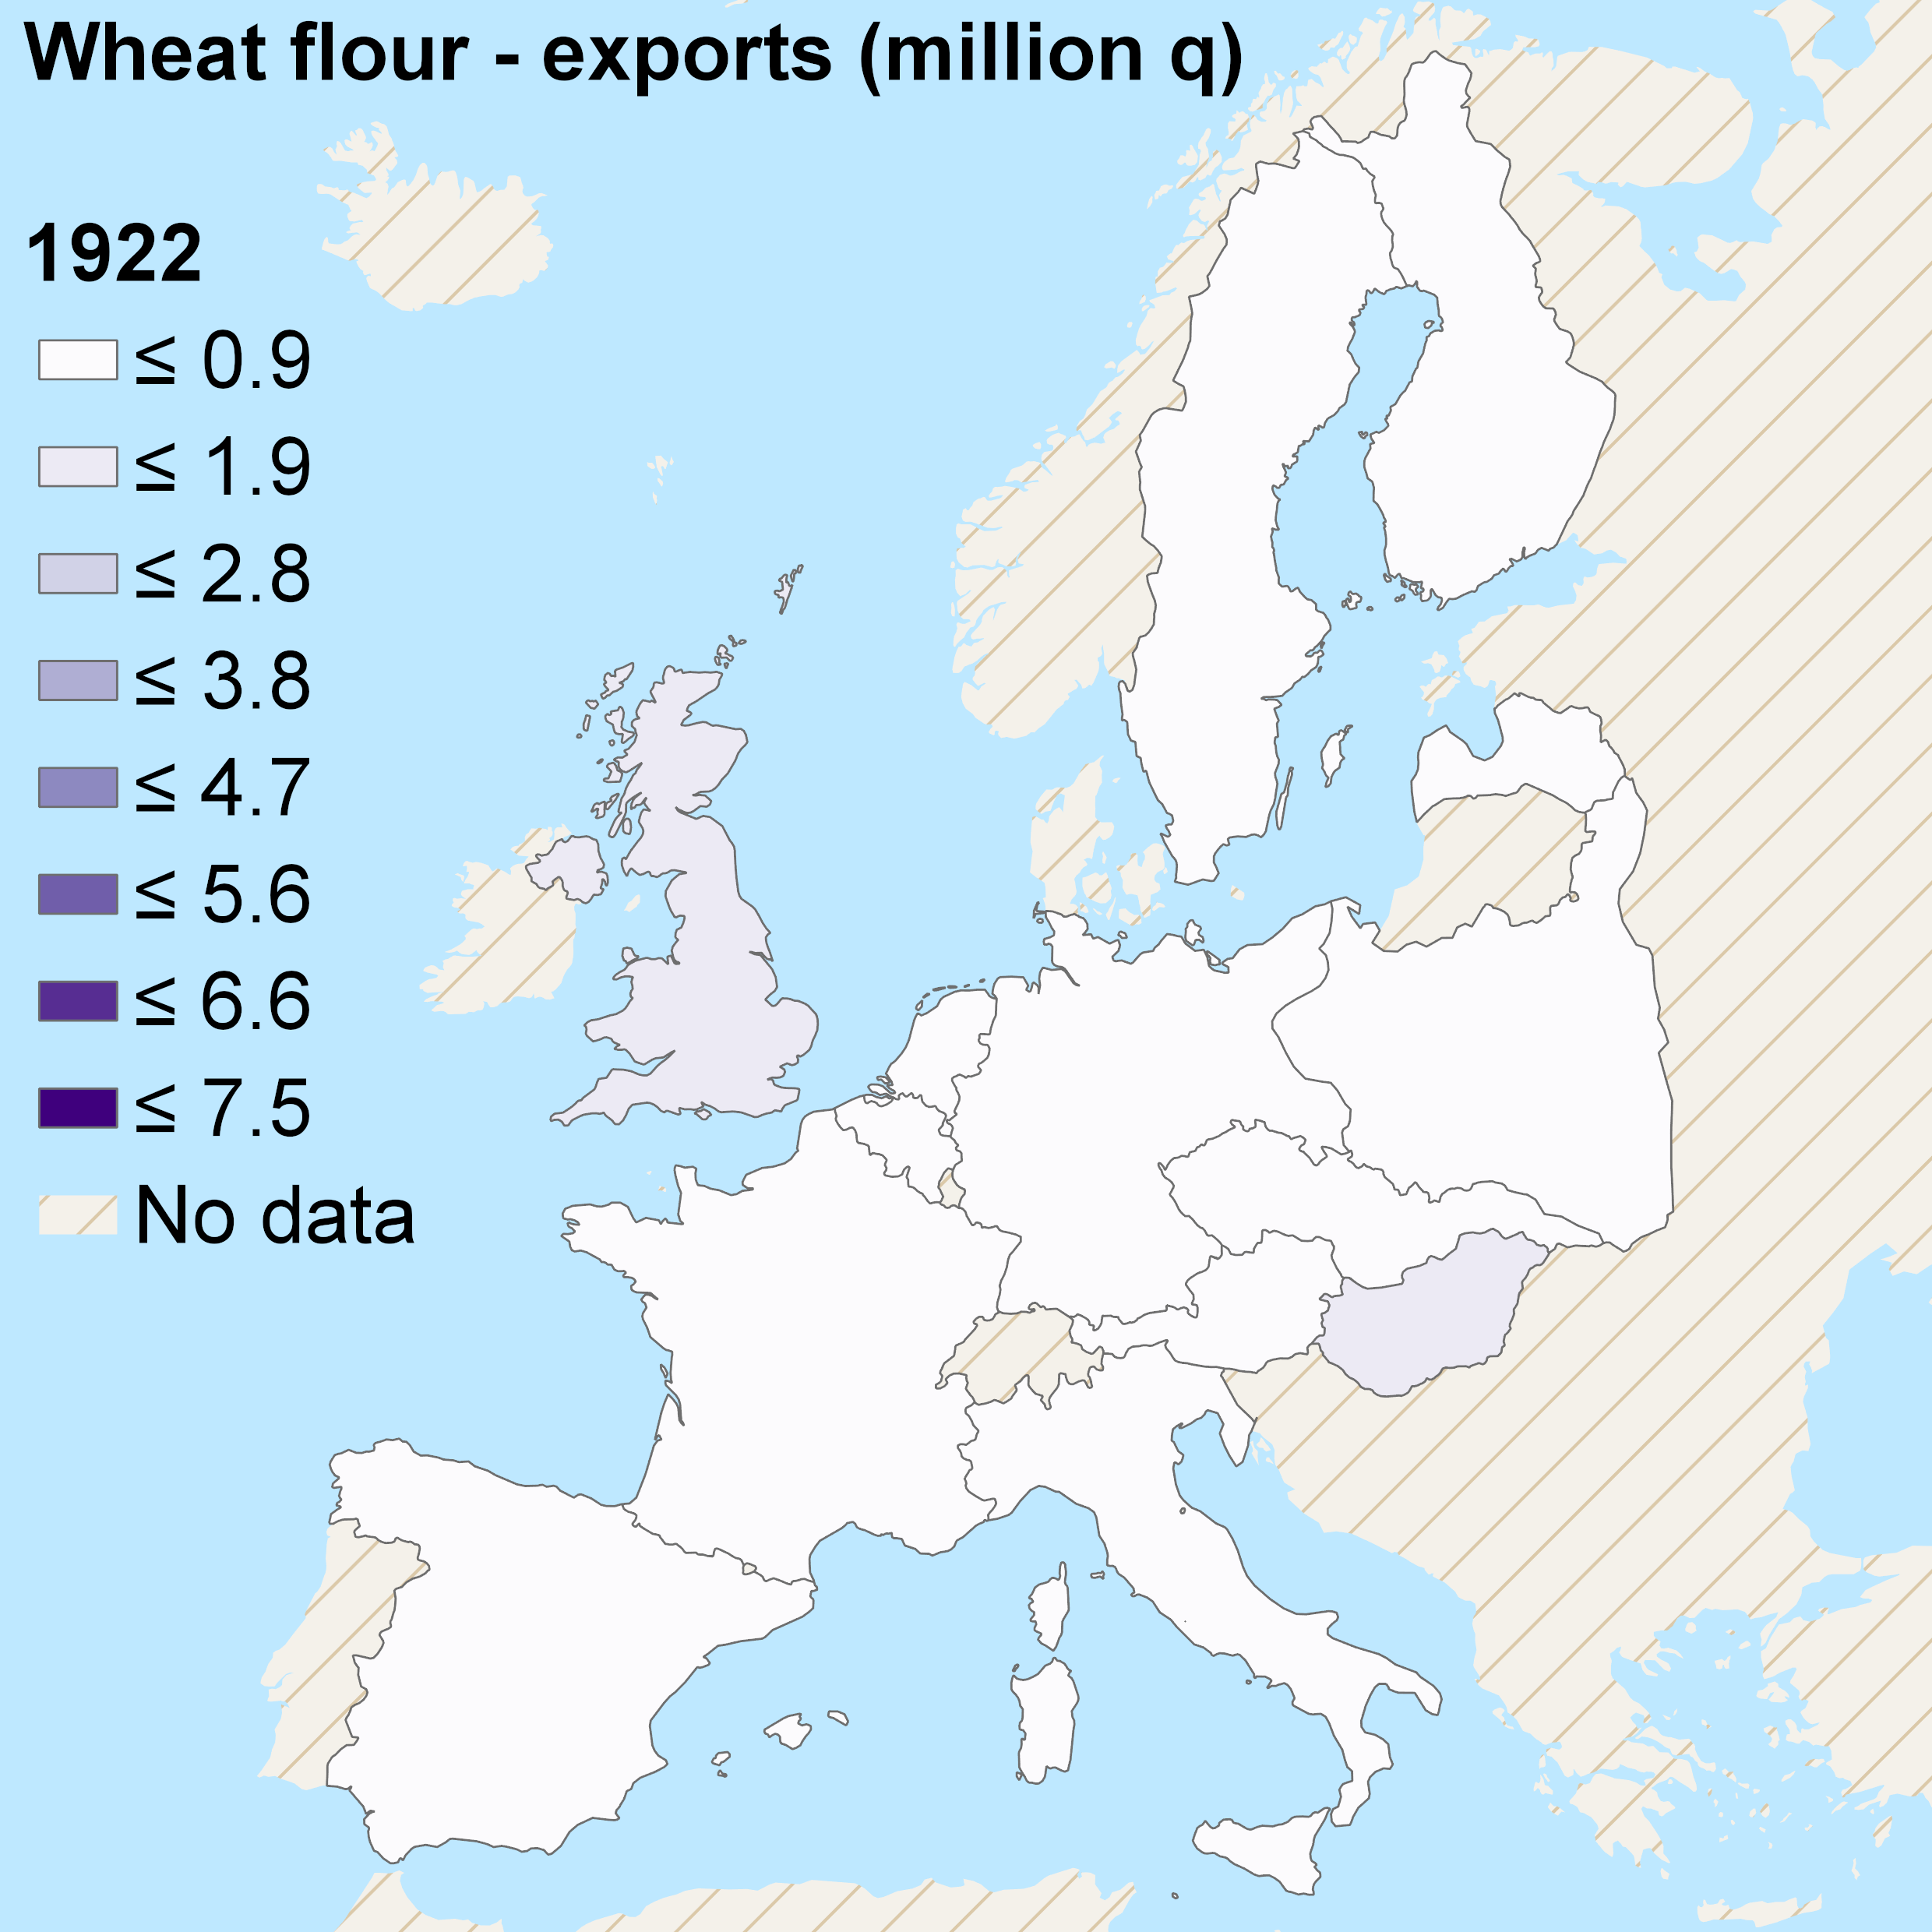 wheat-flour-exports-1922-v2